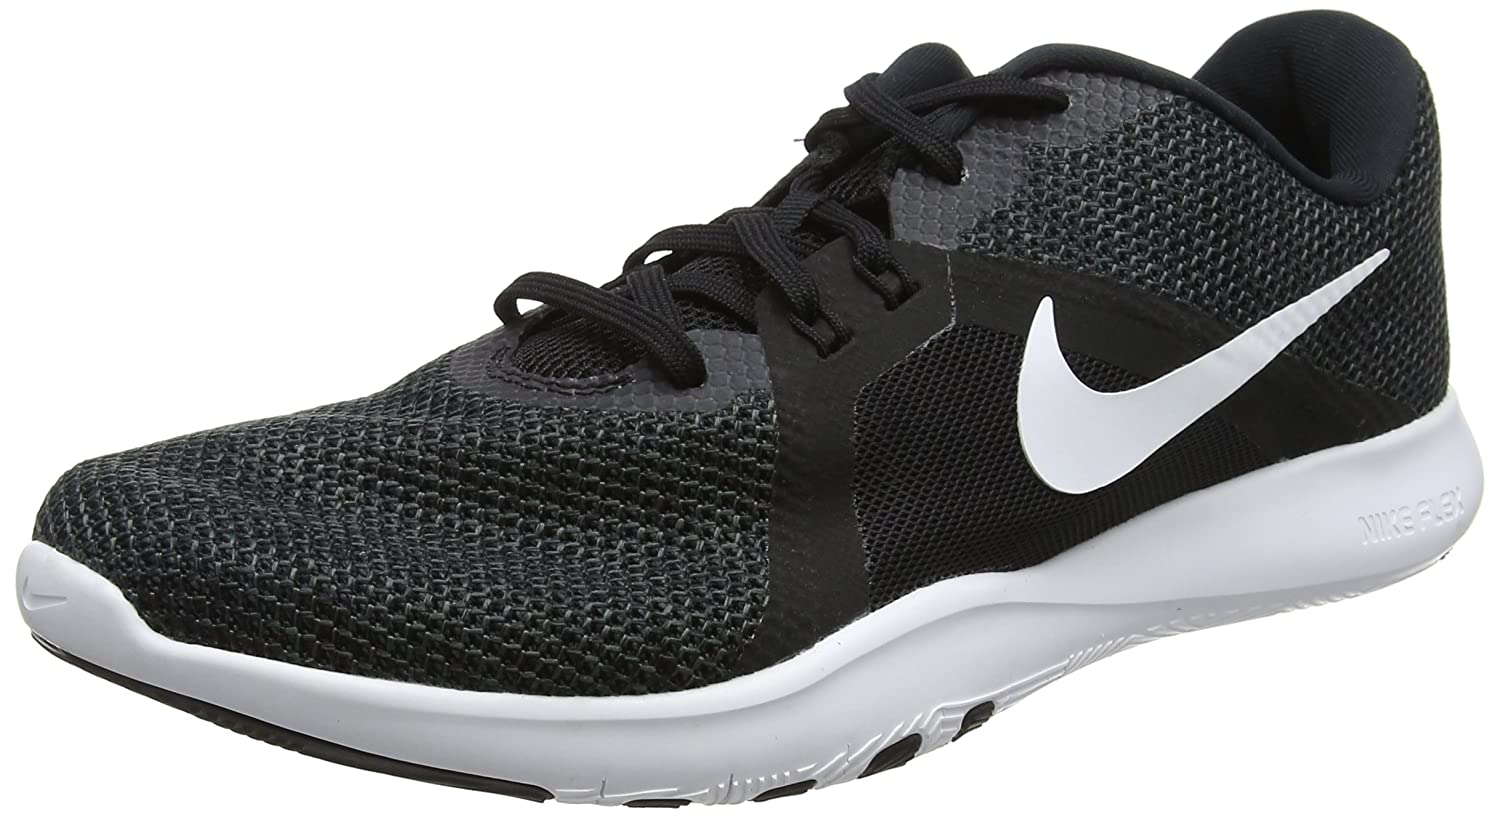 NIKE Women's Flex 8 Cross Trainer B0761Y2M98 11 B(M) US|Black/White - Anthracite